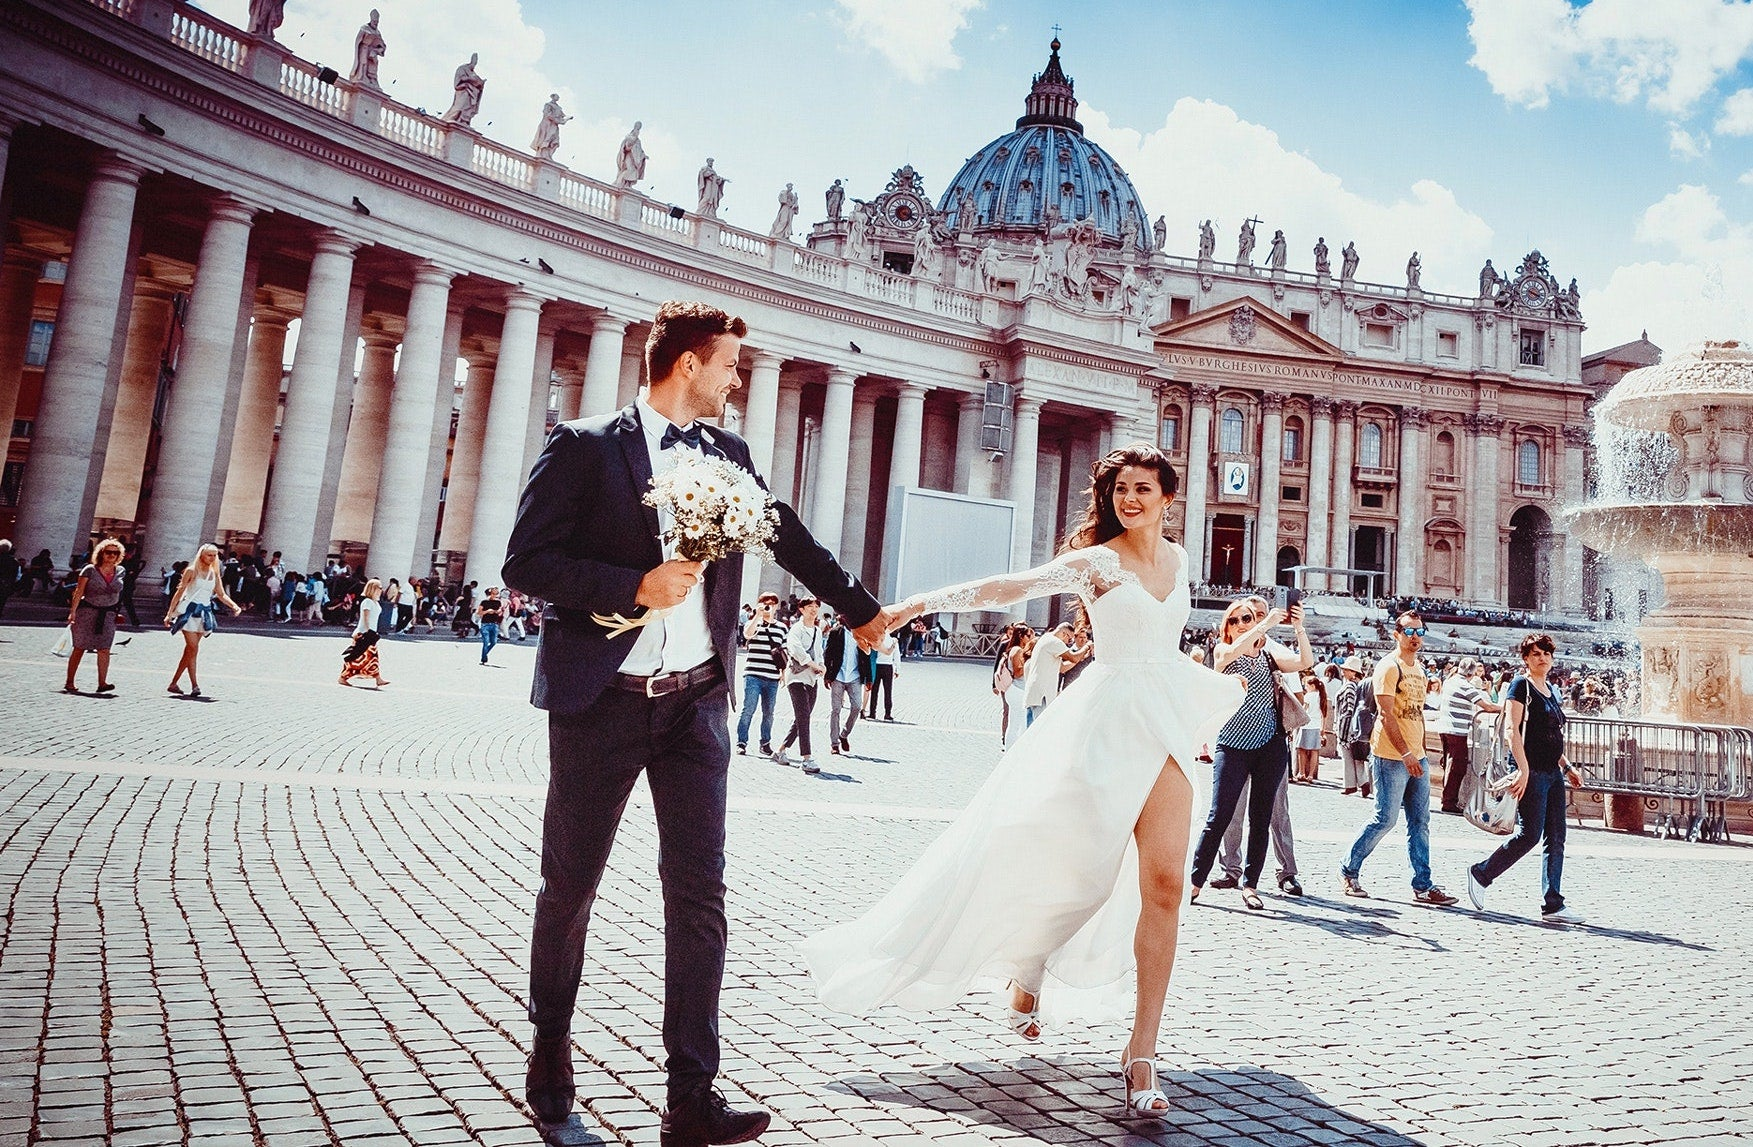 5 Ideas For a More Exciting Wedding